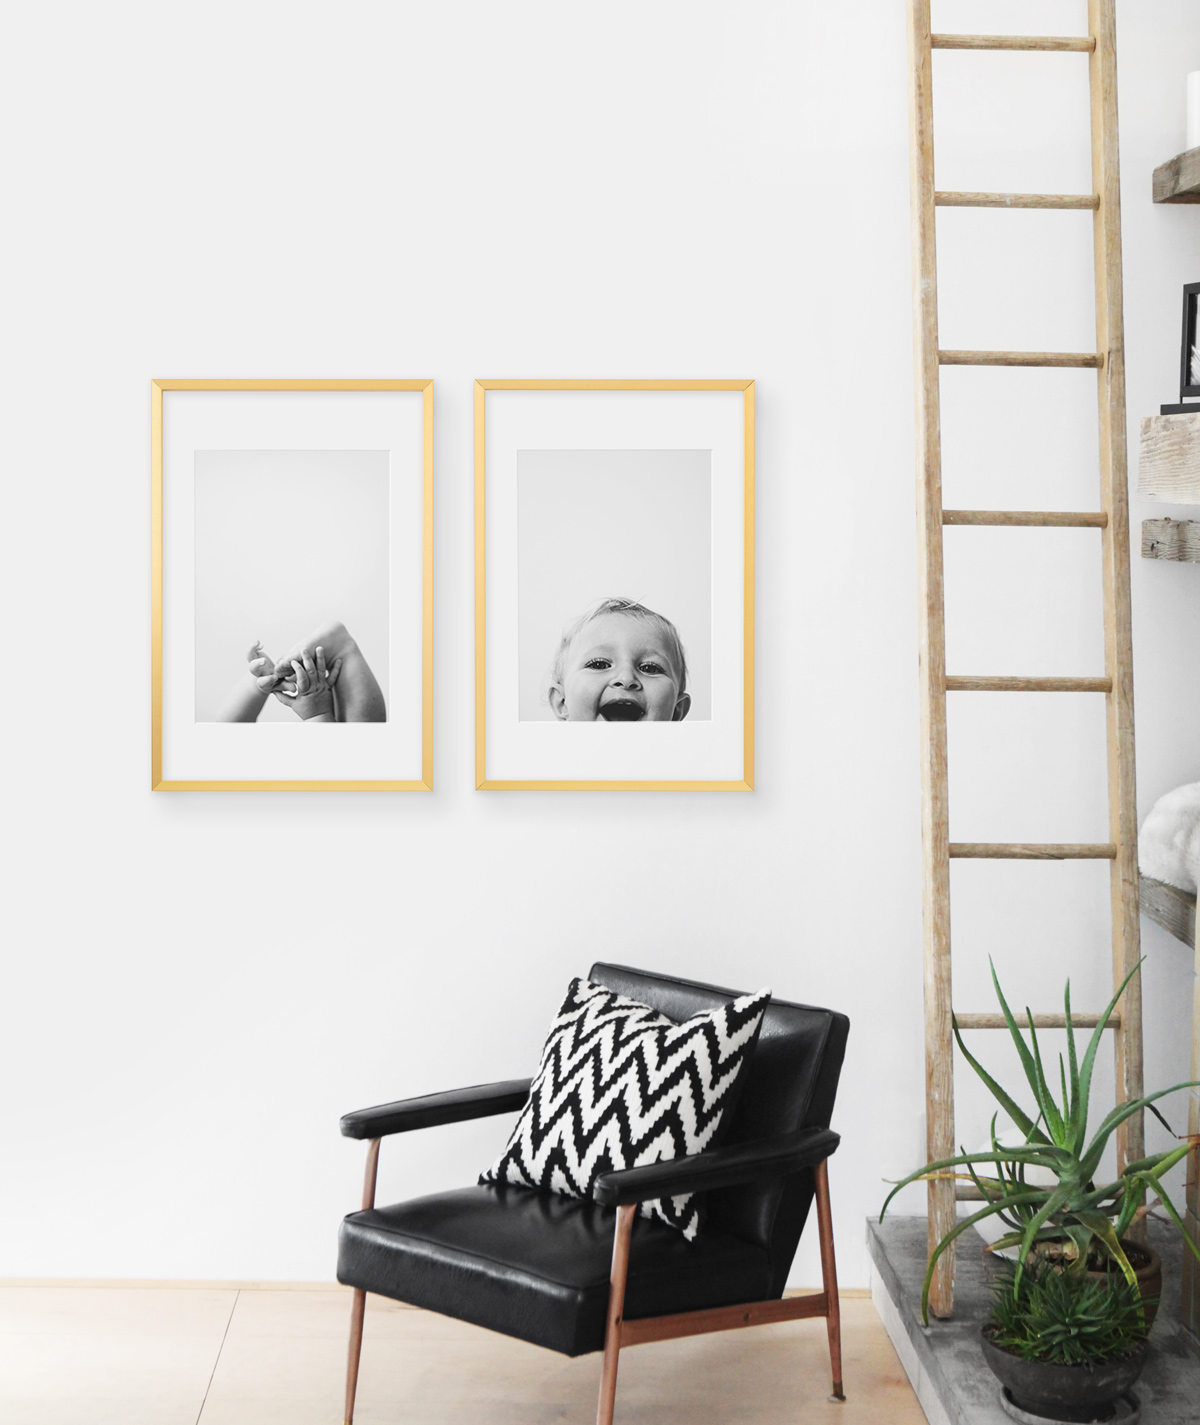 Baby pictures in brass frames hung up above modern leather chair